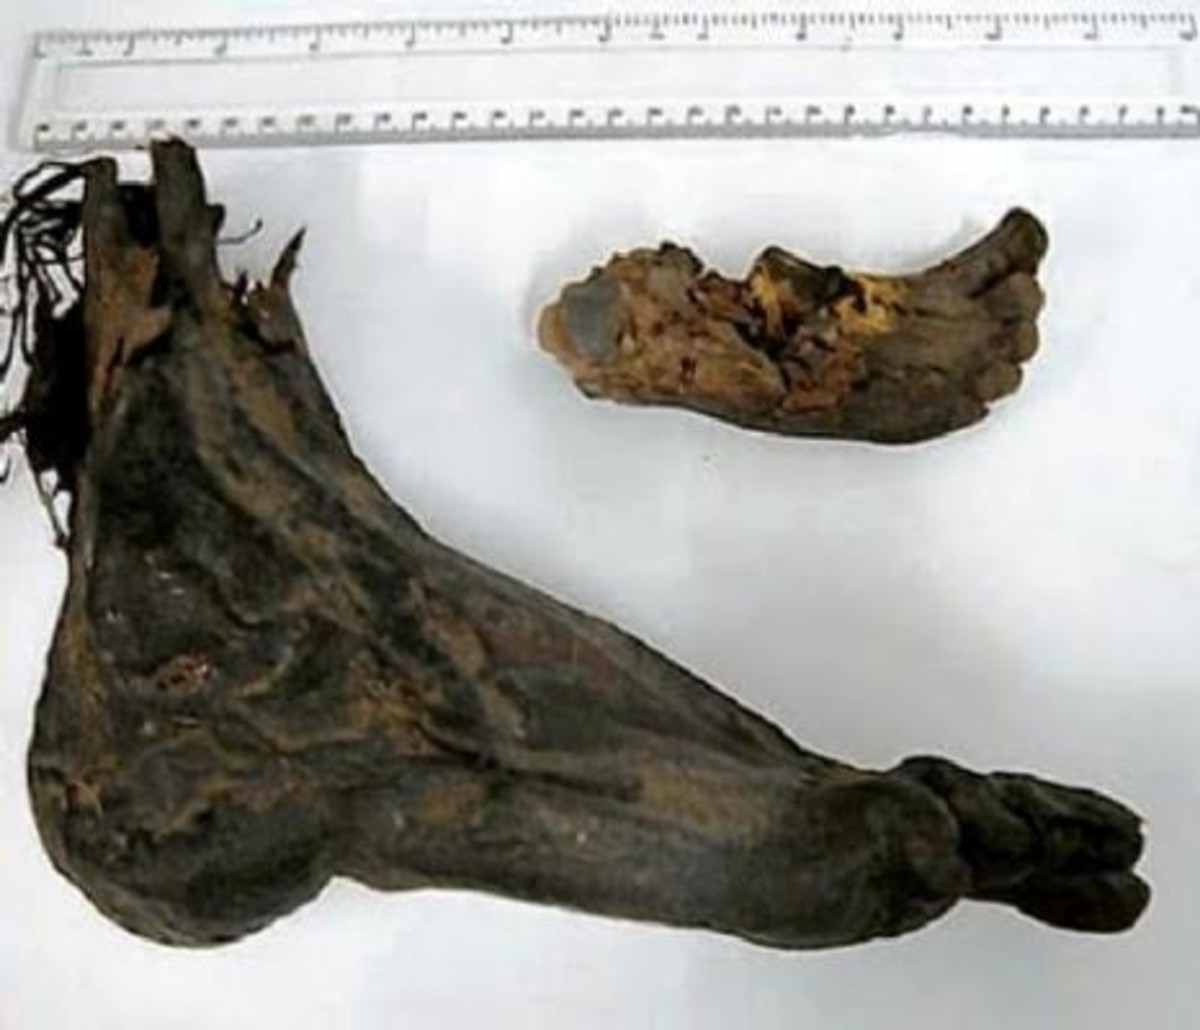 One of the decomposed feet that washed ashore